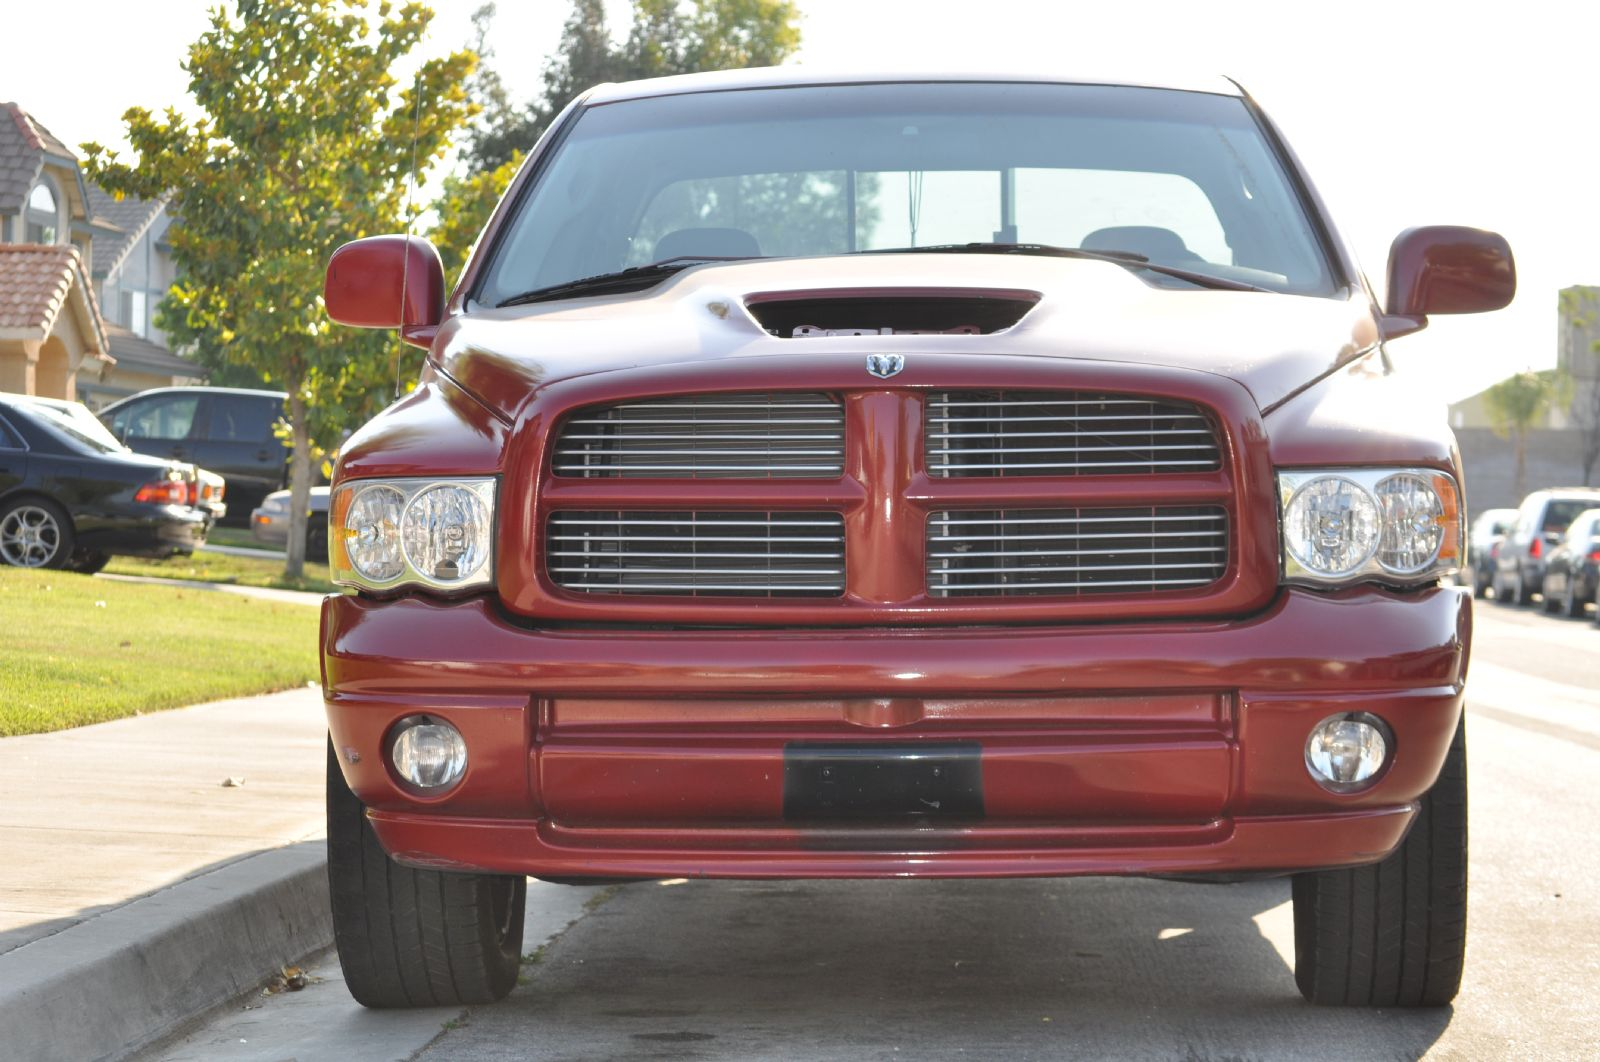 dodge srt 10 kit ram 1500 srt 10 style for sale custom 31030 526336. Cars Review. Best American Auto & Cars Review